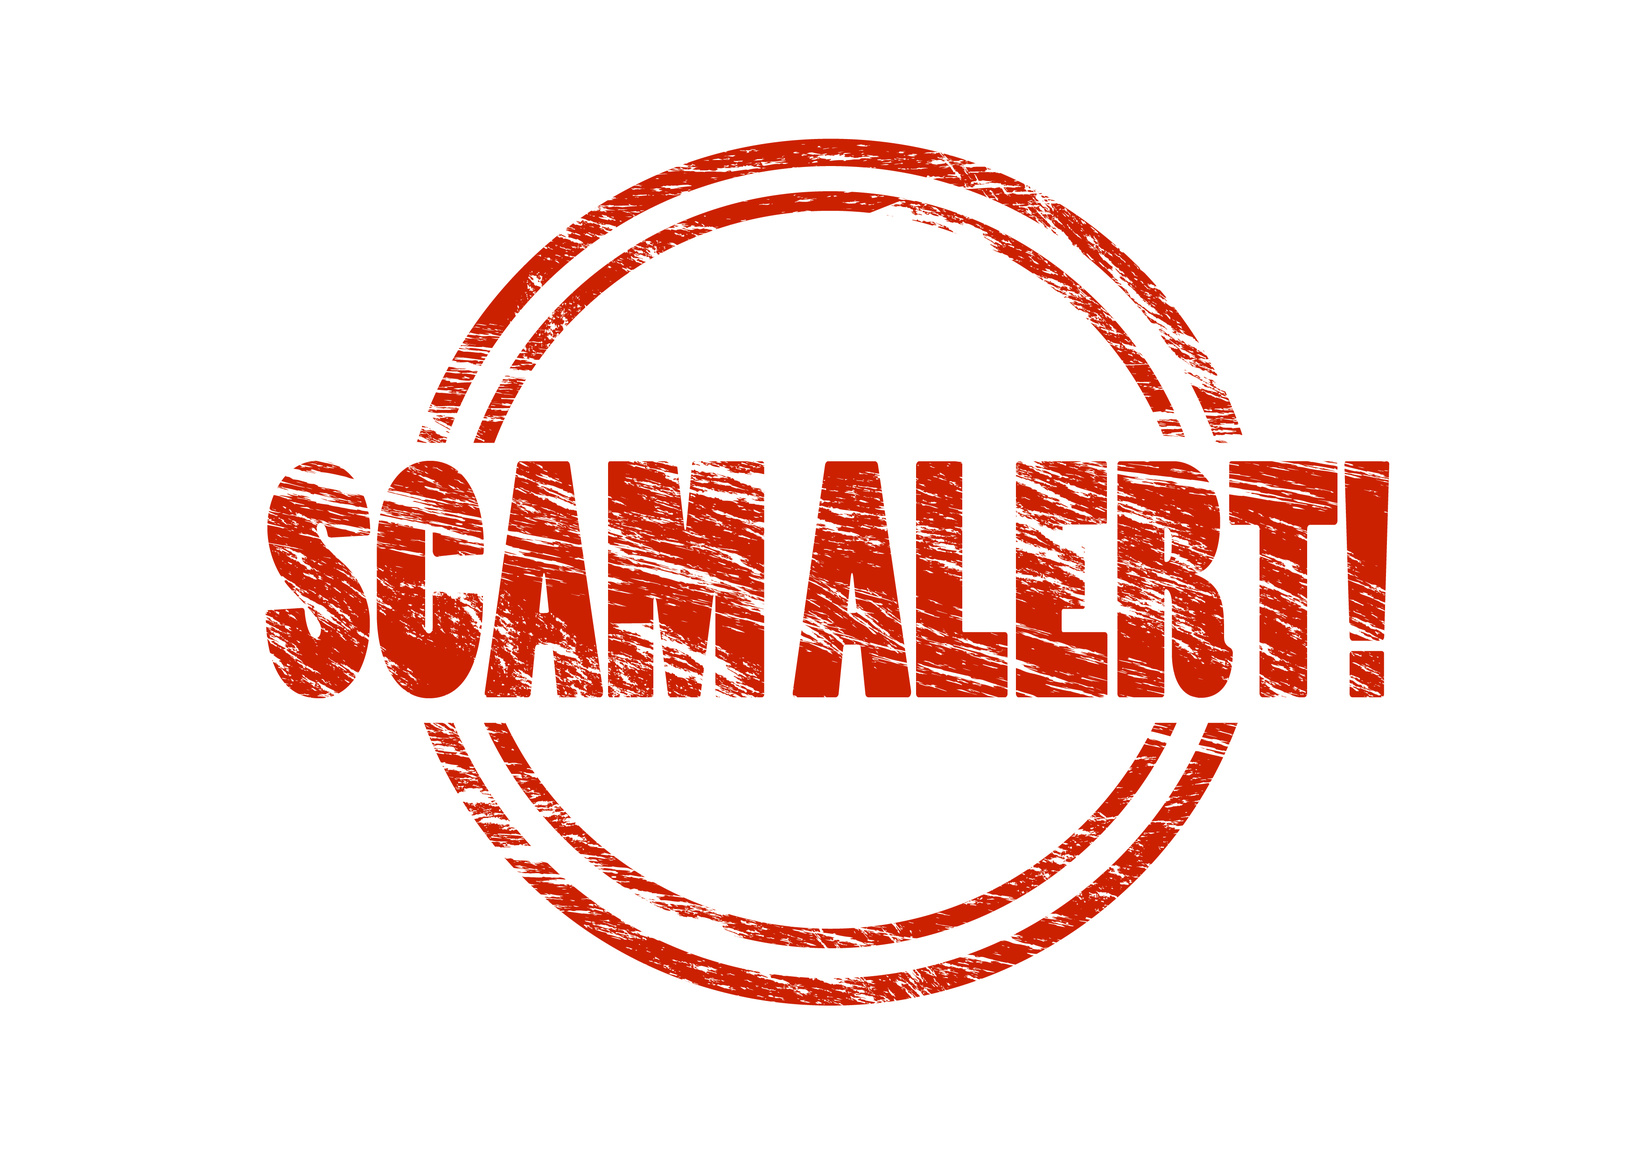 - Scam FOT 1 - Cryptocurrency mining scam catches 15m people out